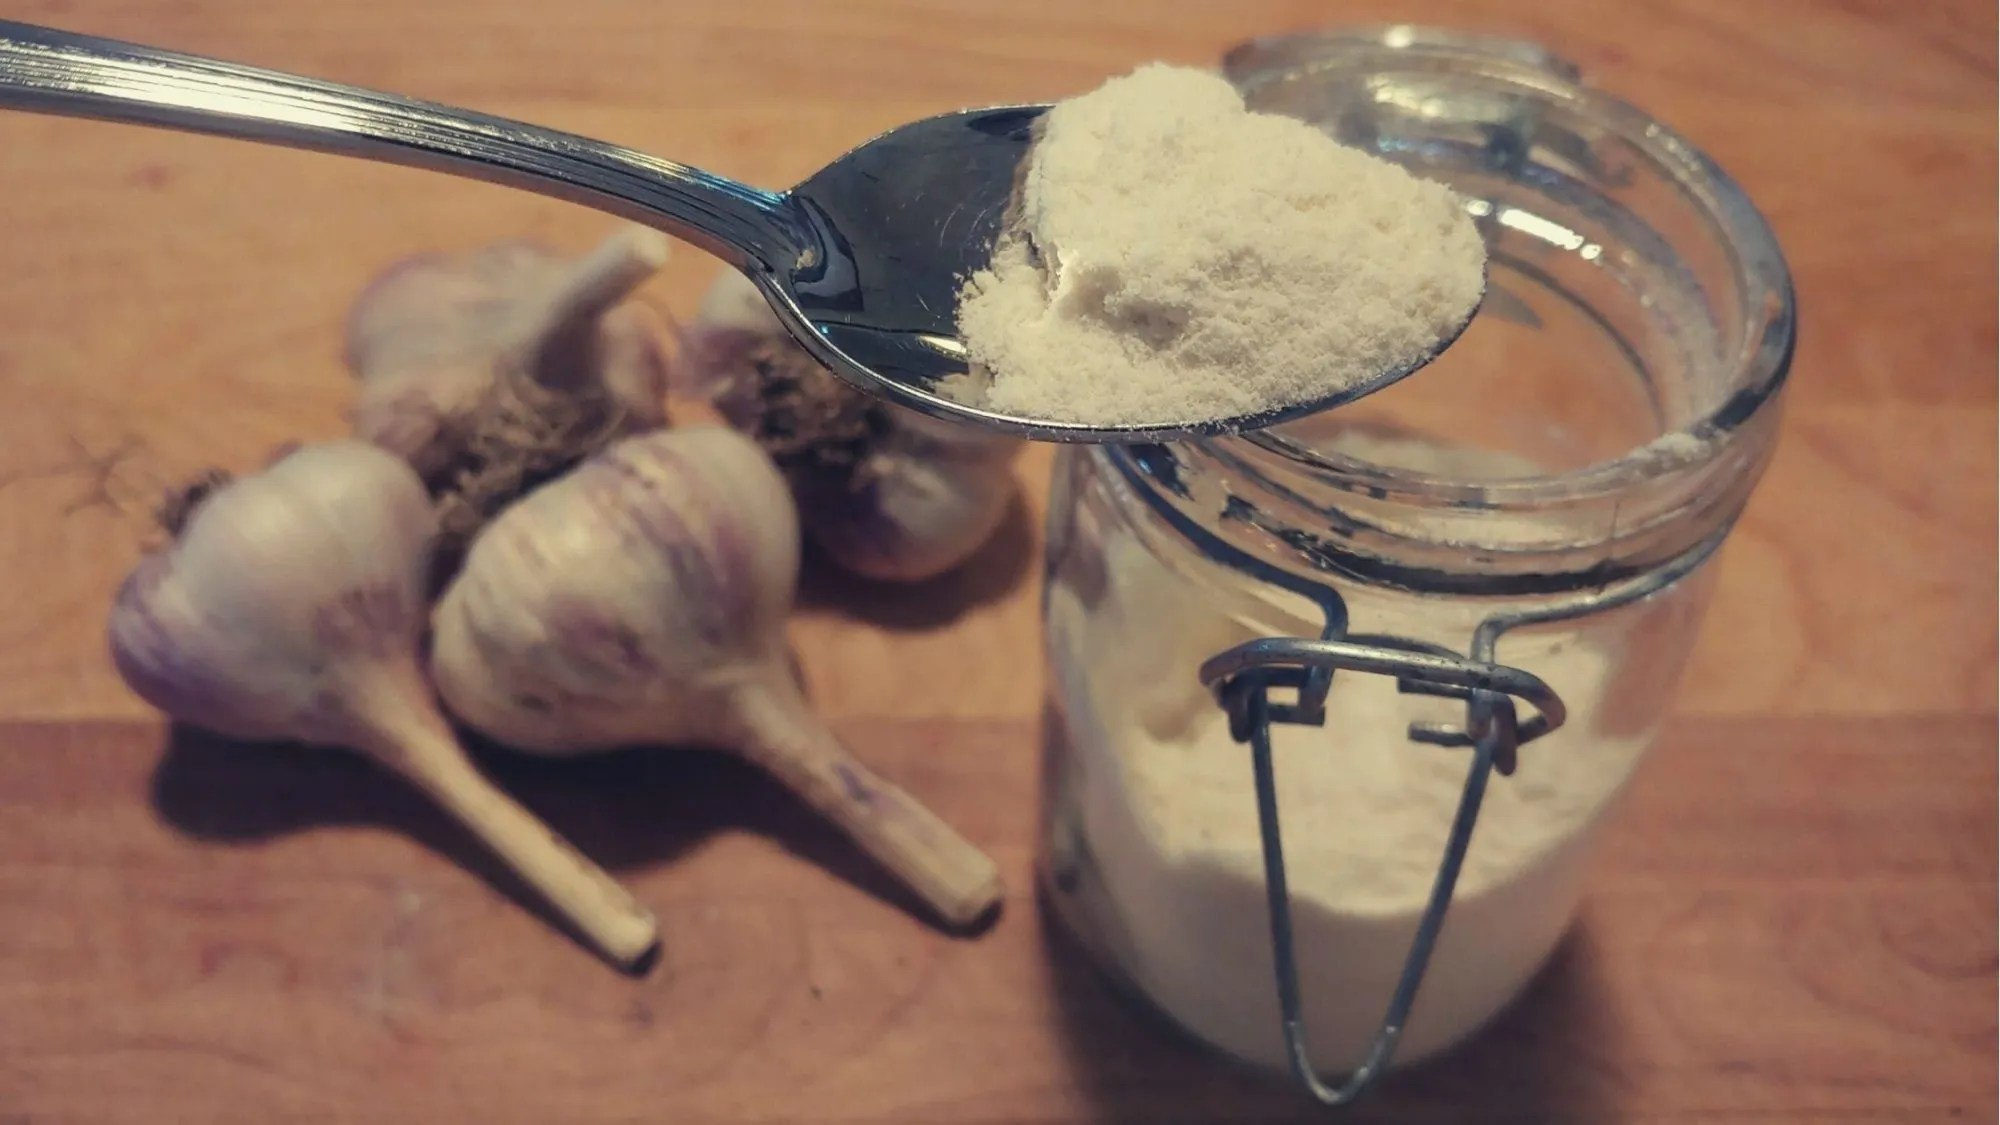 How to Make Garlic Powder